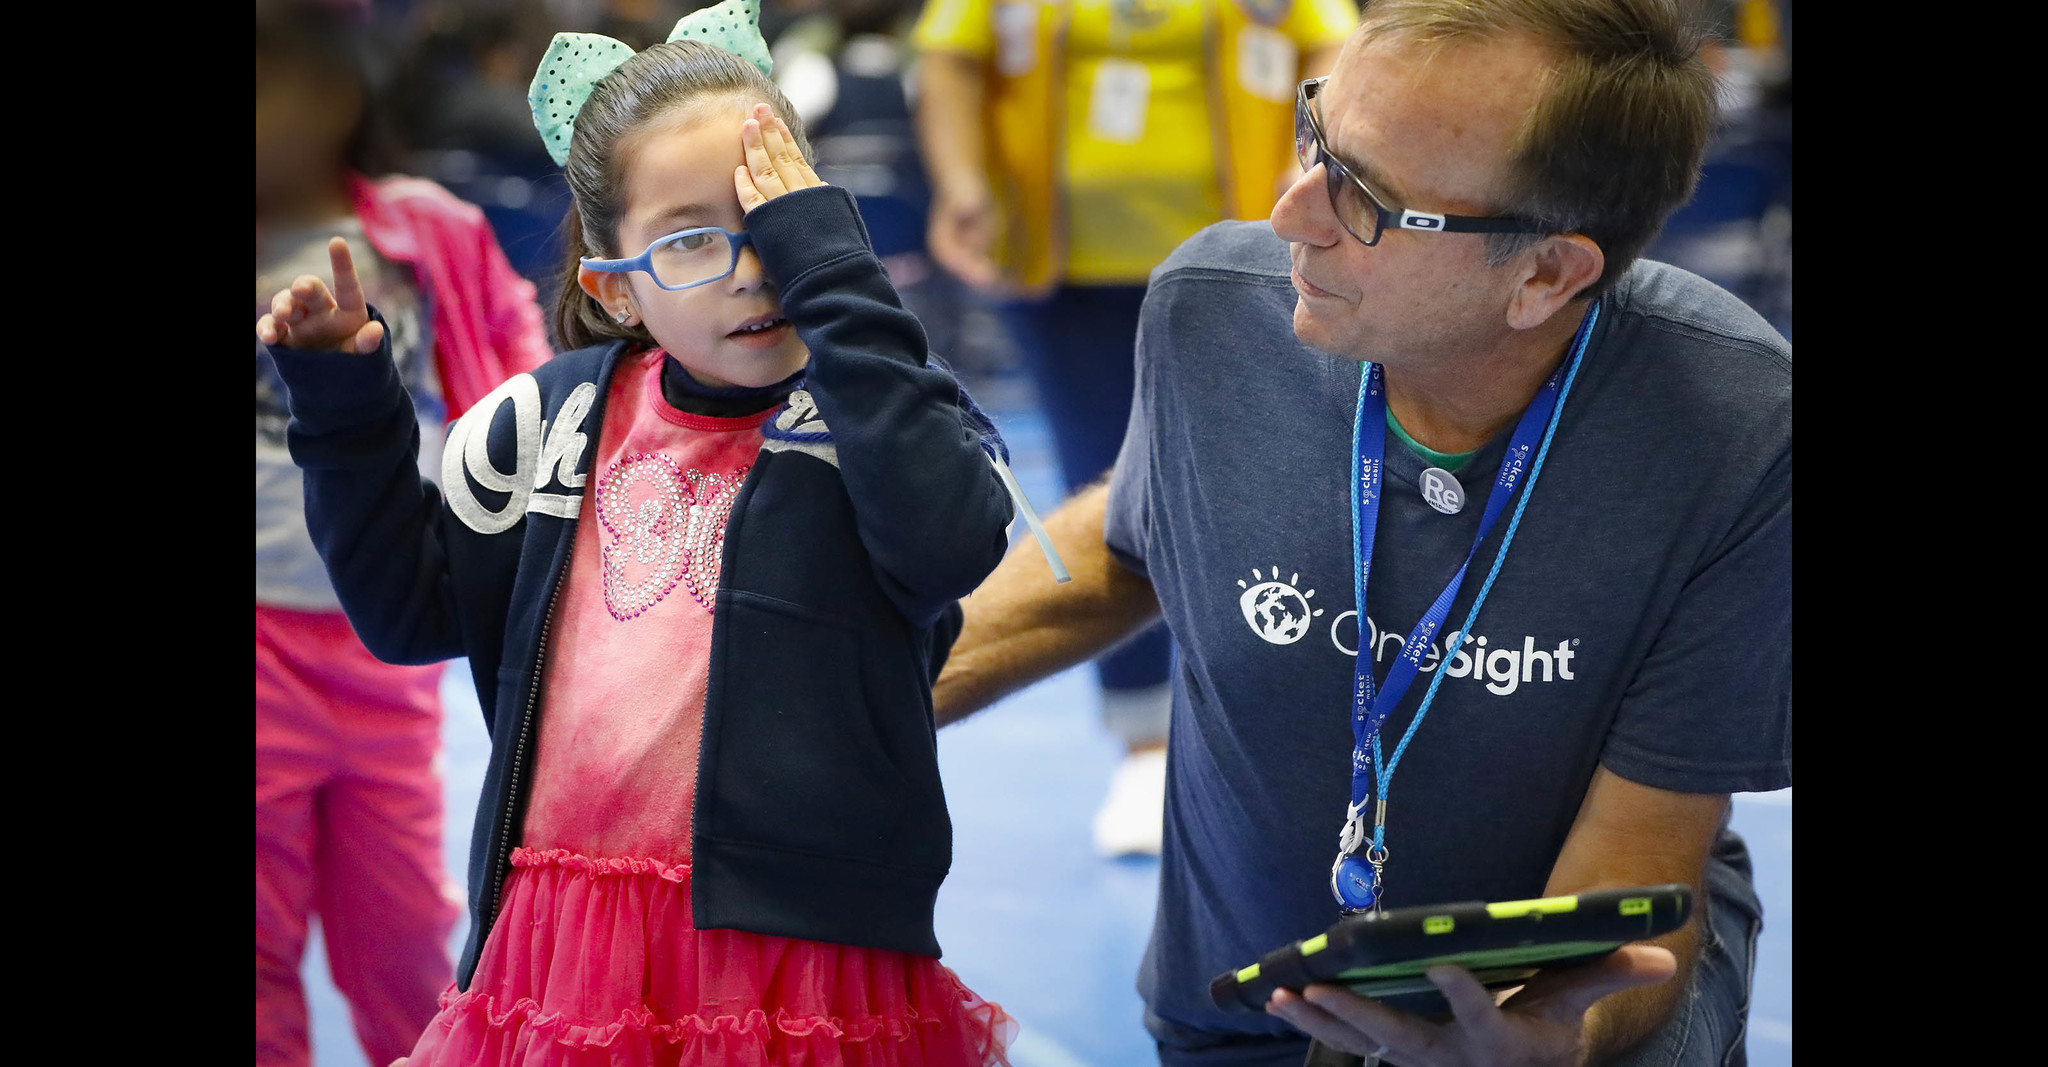 OneSight provides glasses and exams to students